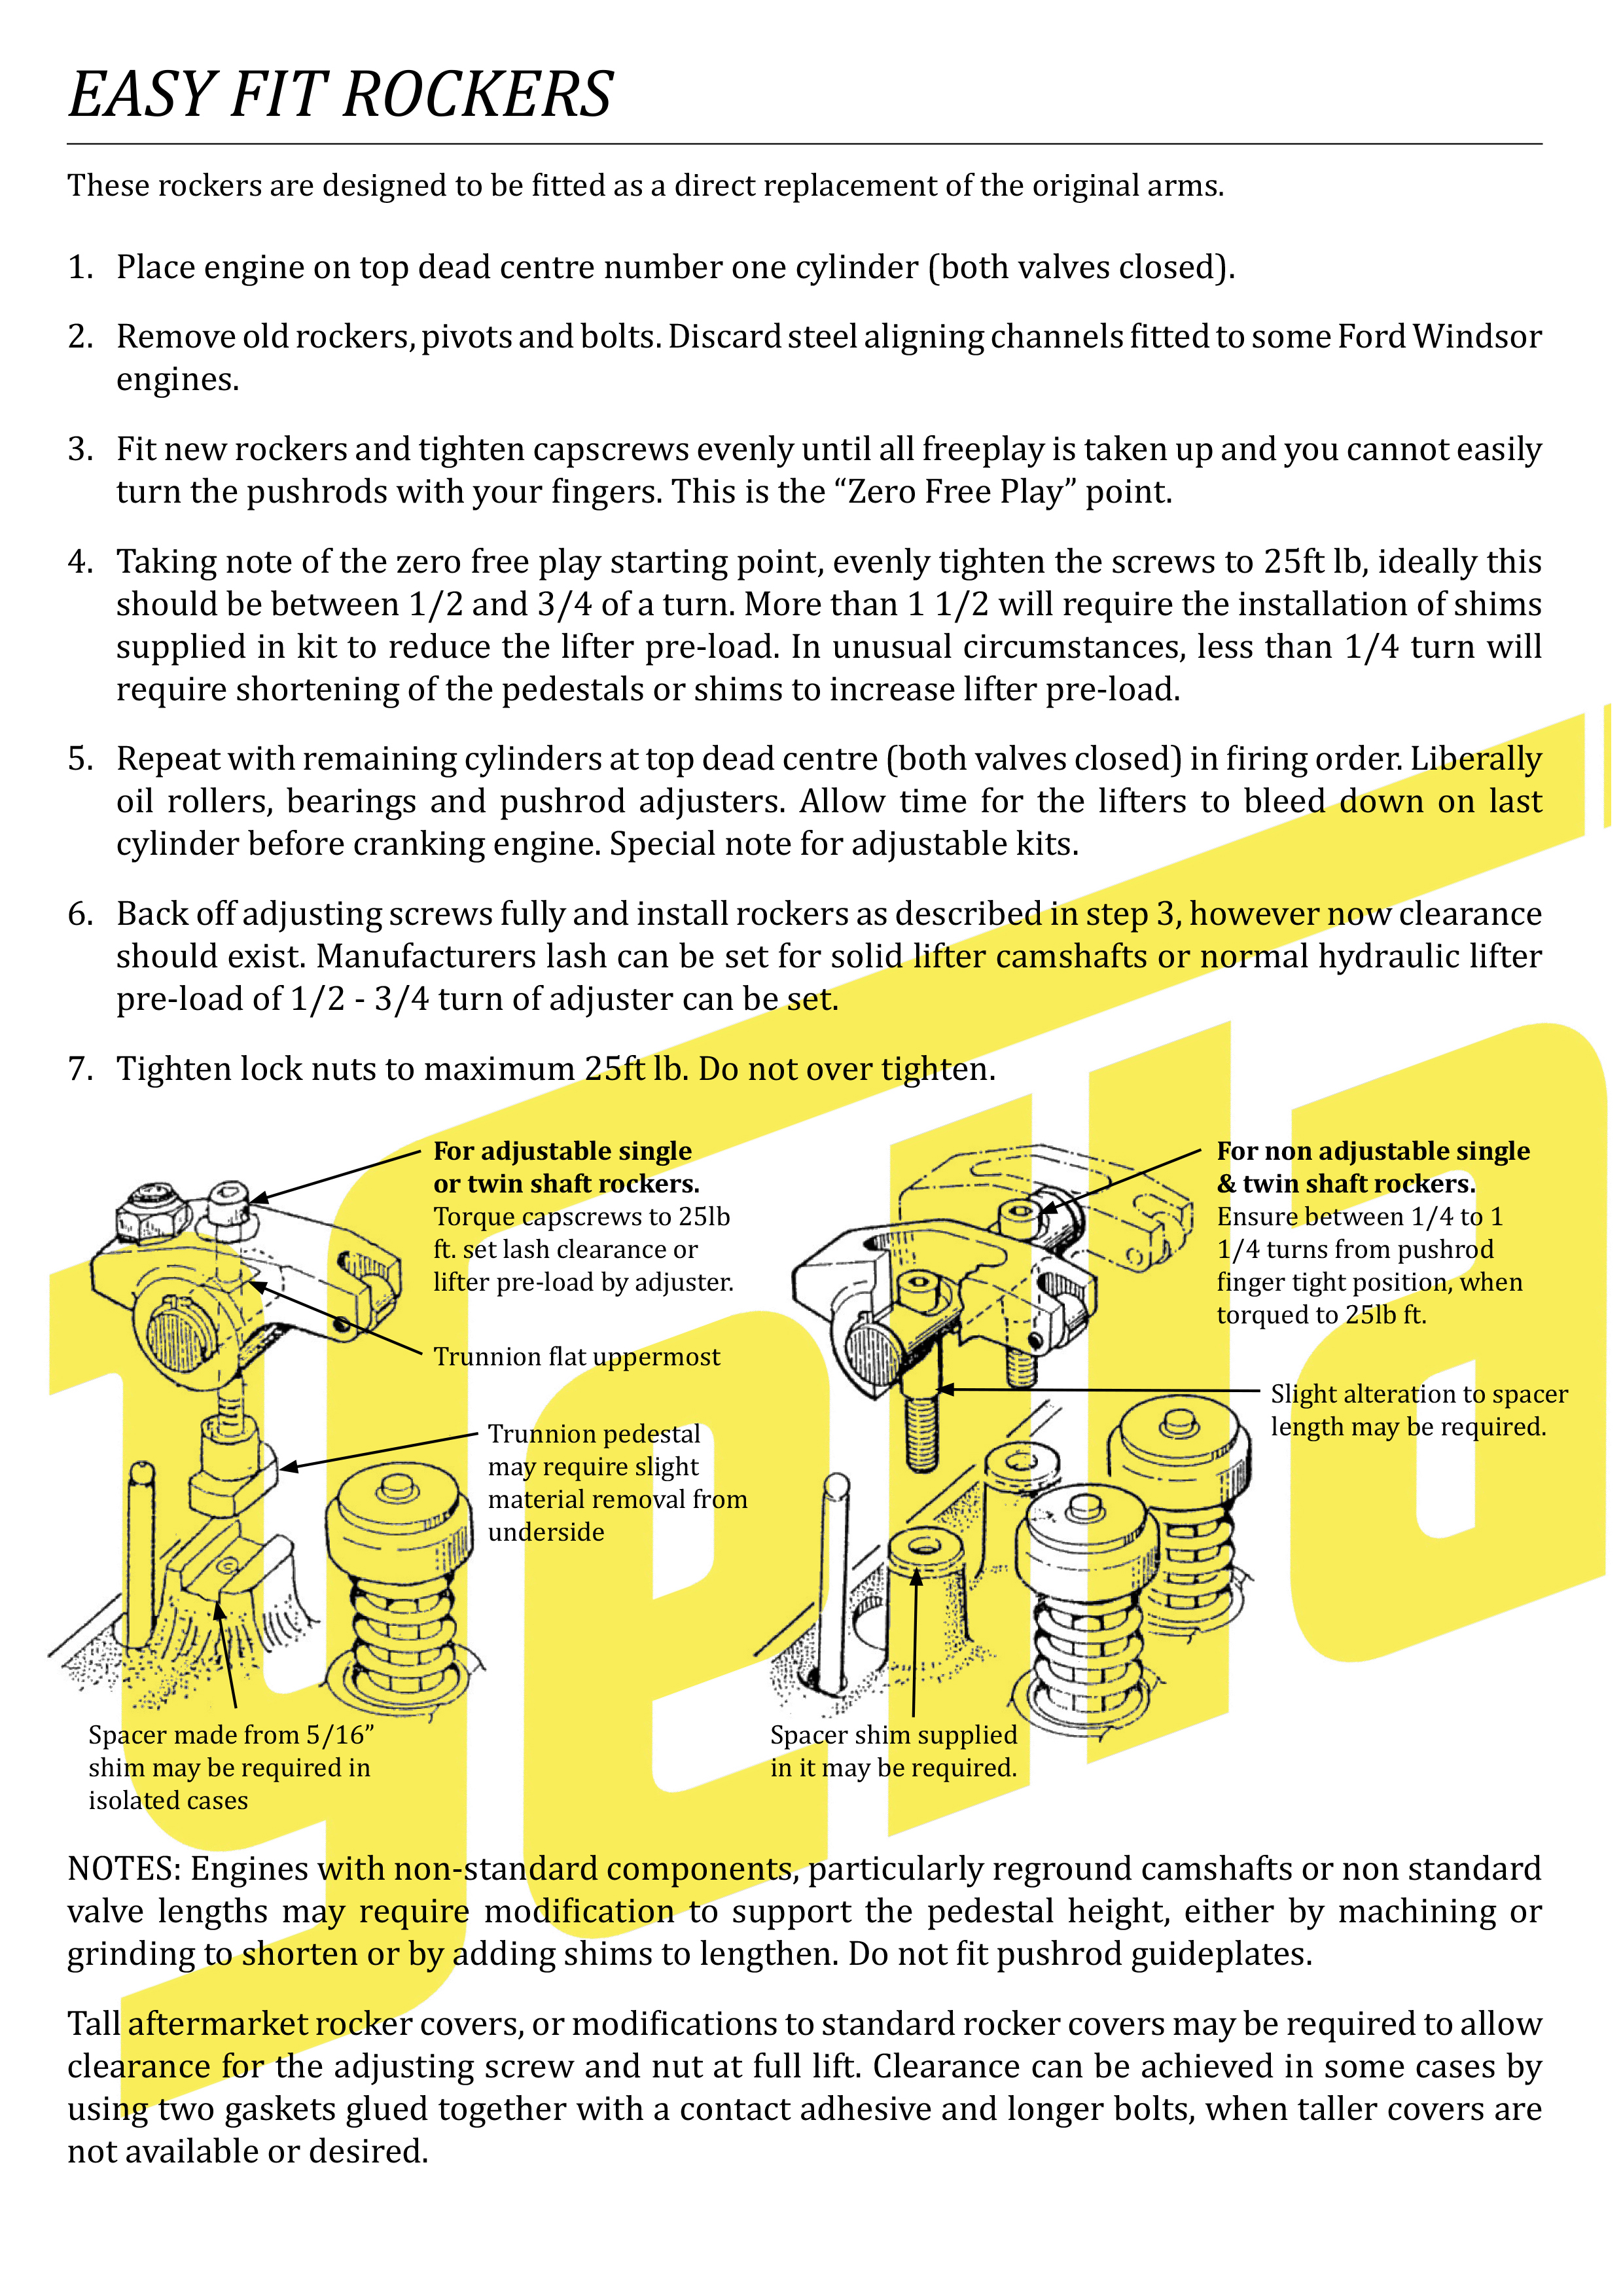 generic-instructions-ver1.18-page-2.jpg